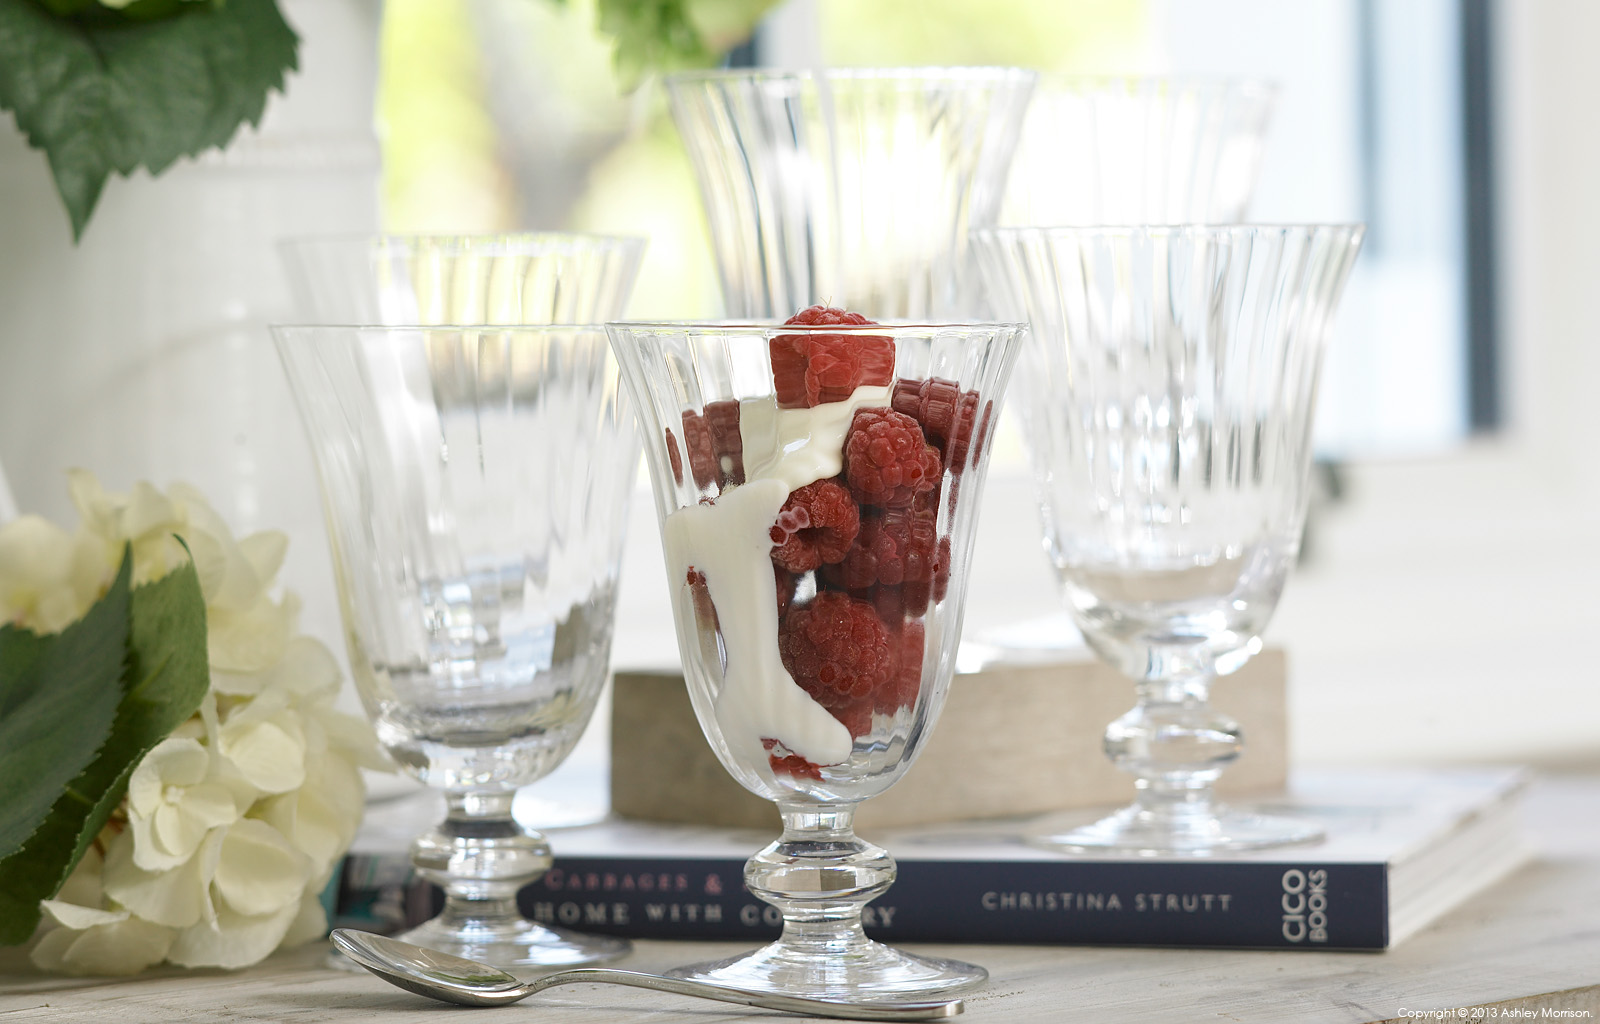 A set of vintage style glasses filled with raspberries and cream by Ashley Morrison.